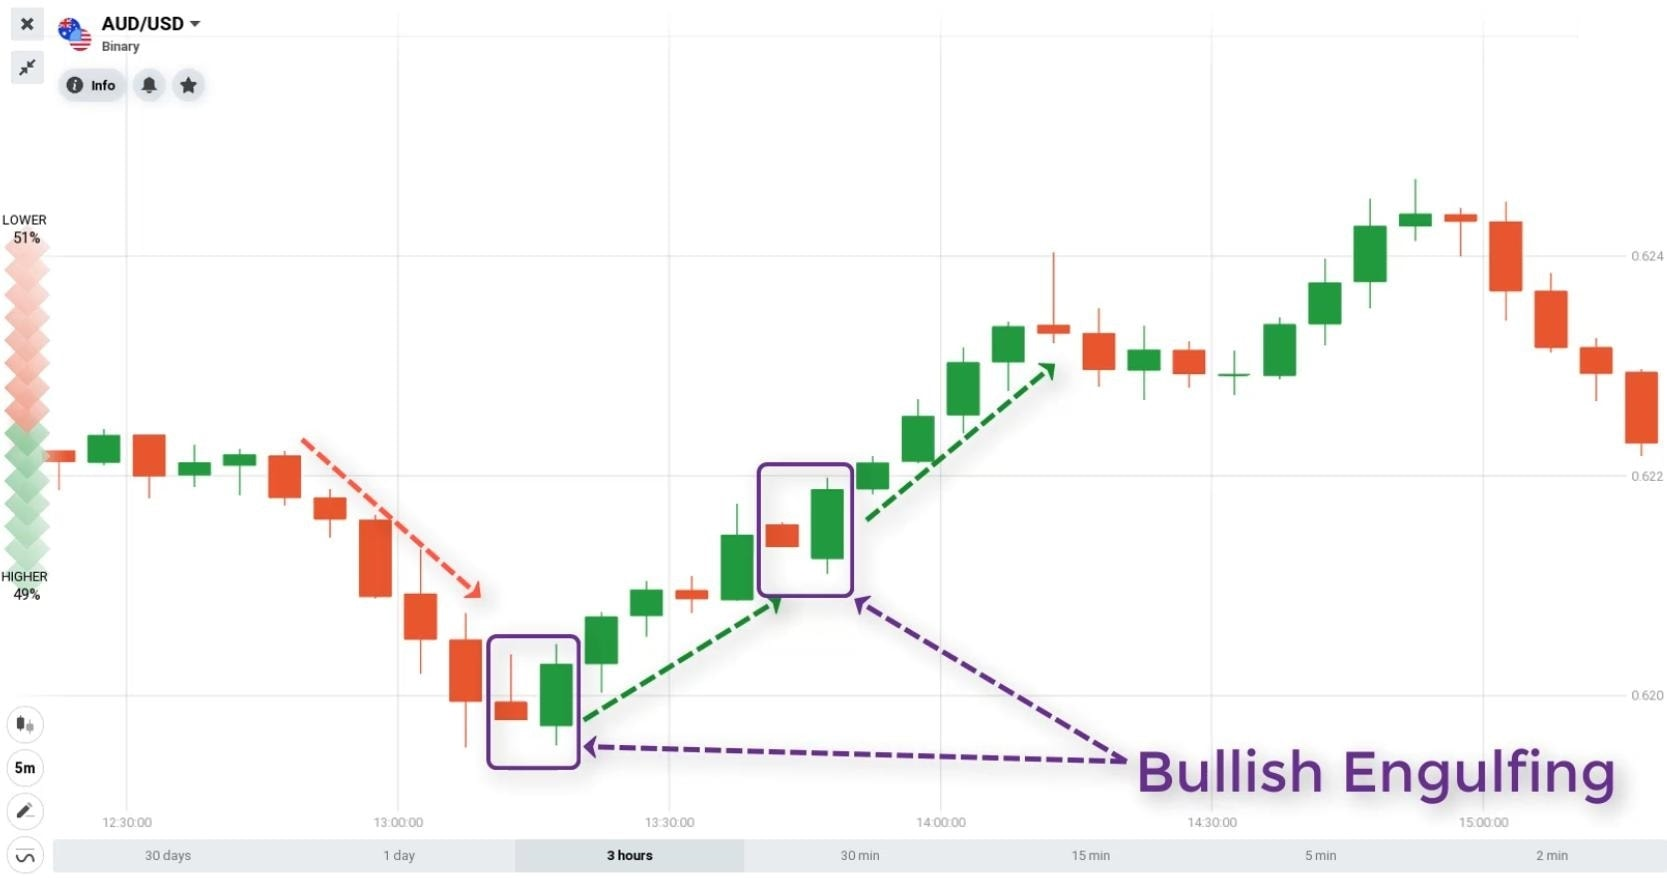 What is Bullish Engulfing?